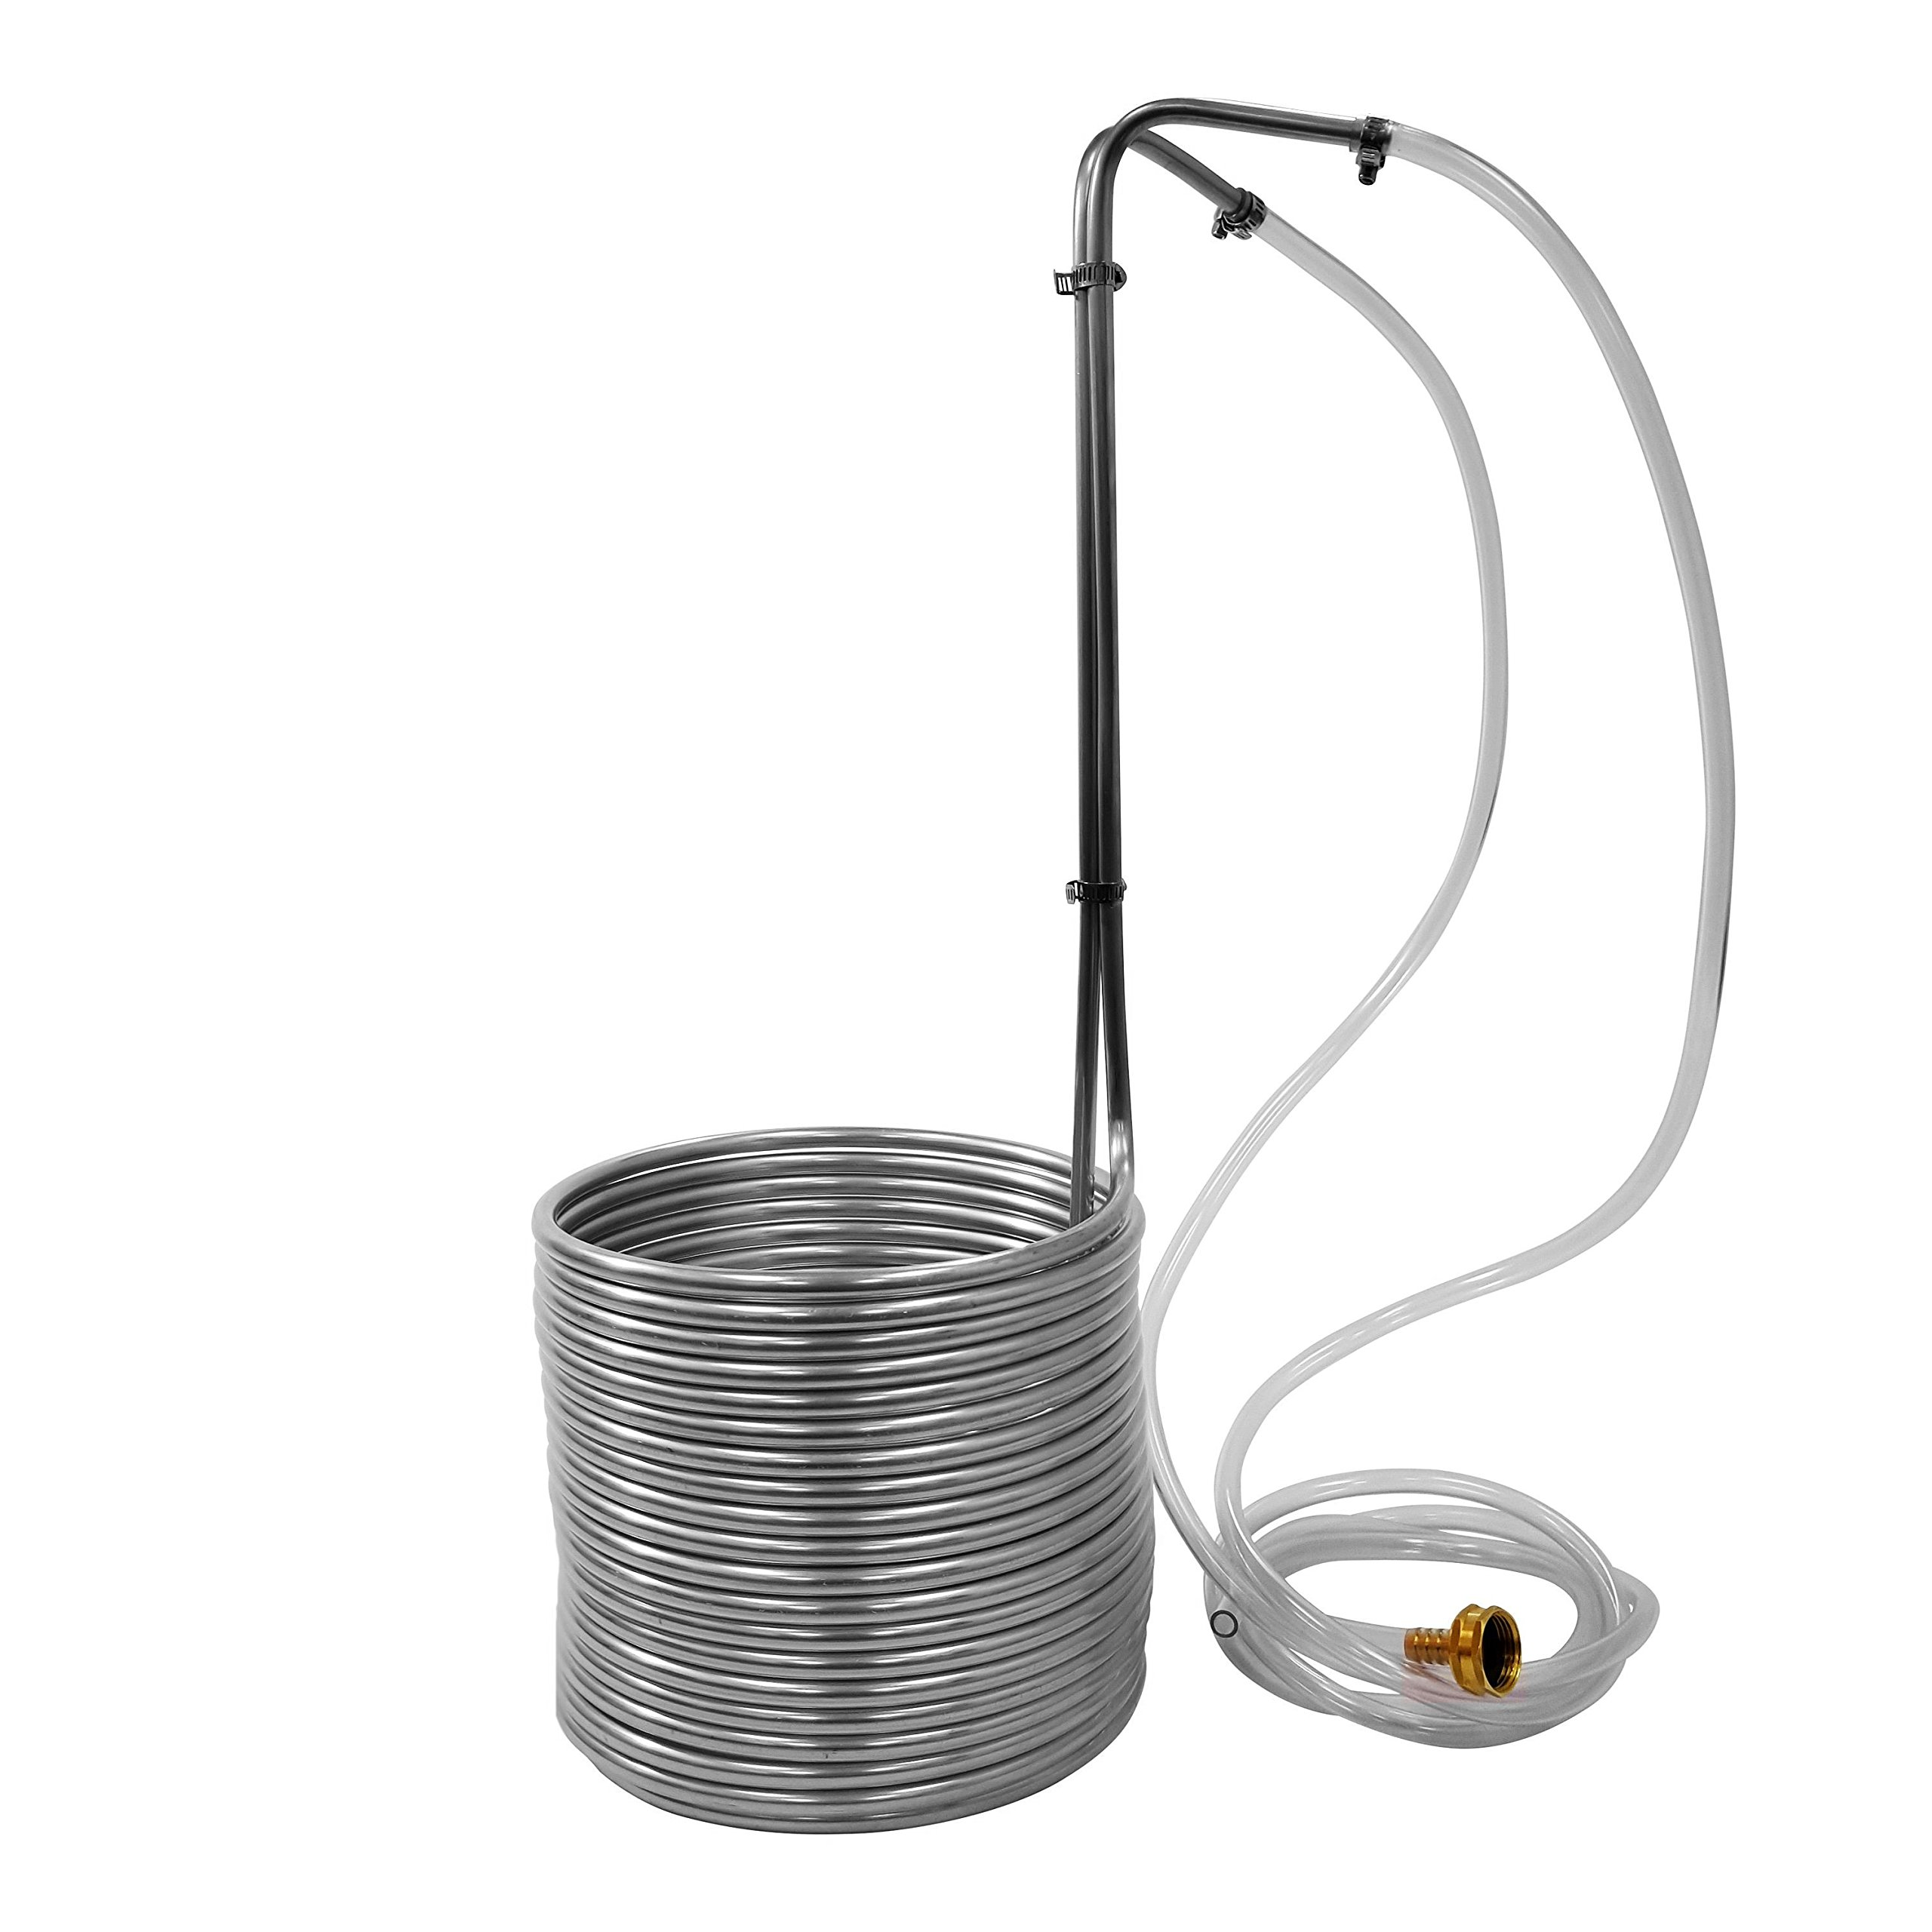 NY Brew Supply W3850-SSV 3/8'' x 50' Stainless Steel Wort Chiller, Silver by NY Brew Supply